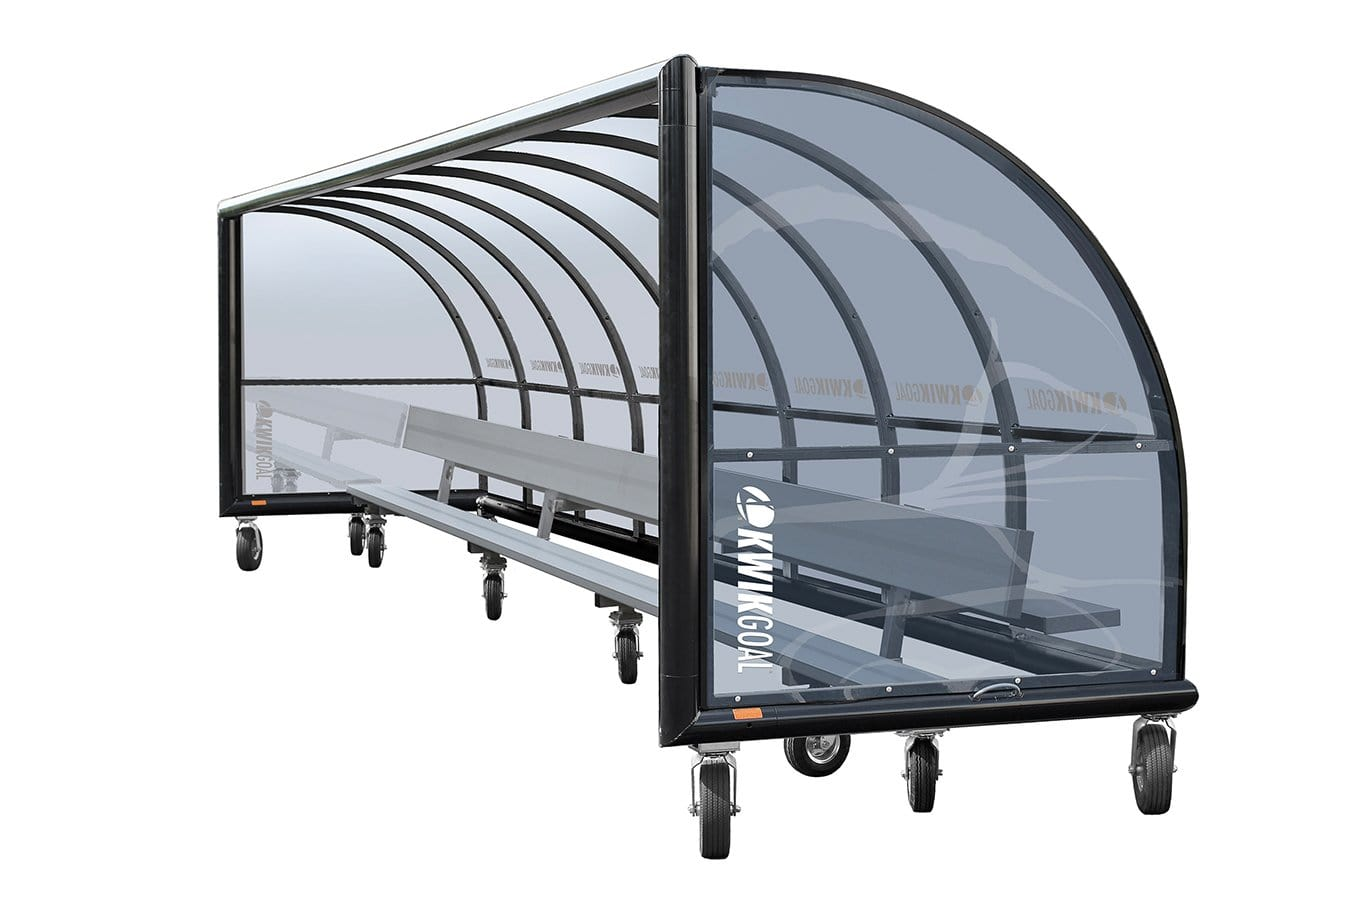 Grey-tinted Polycarbonate Shelter & Bench With Wheels